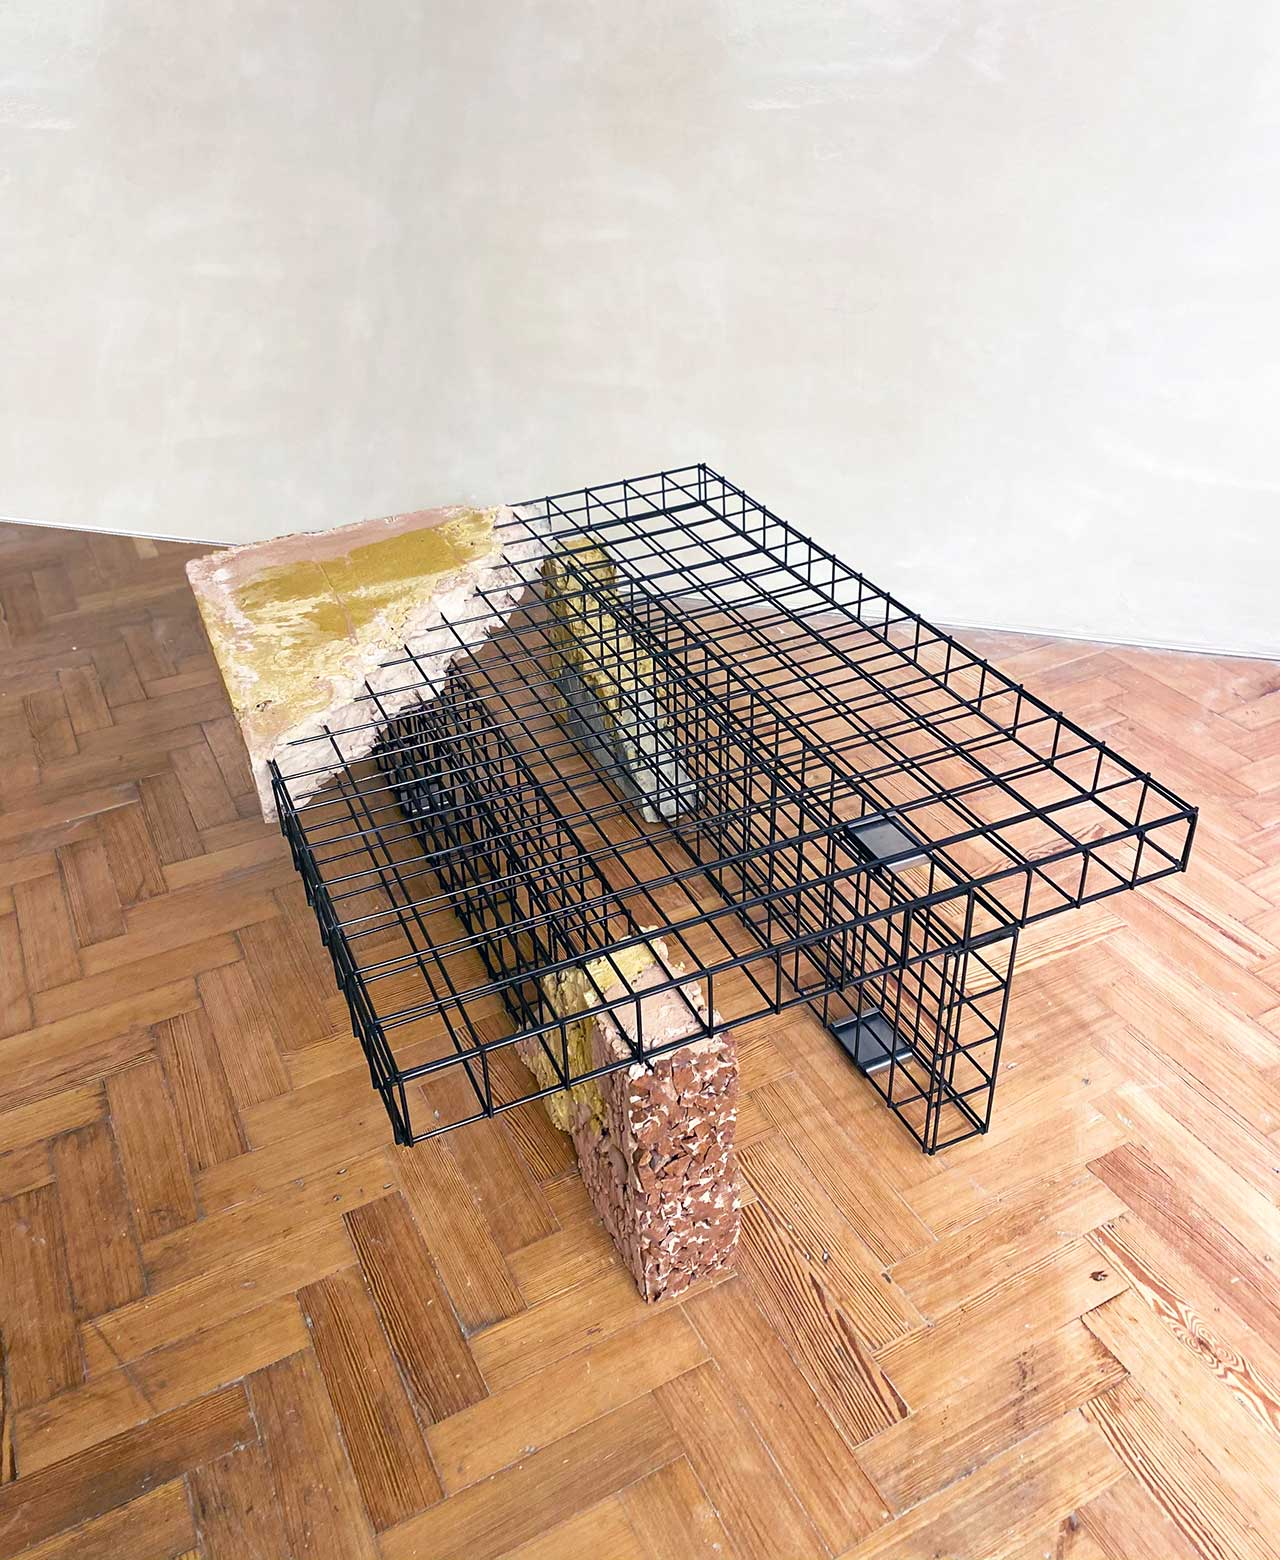 wire crates and construction materials